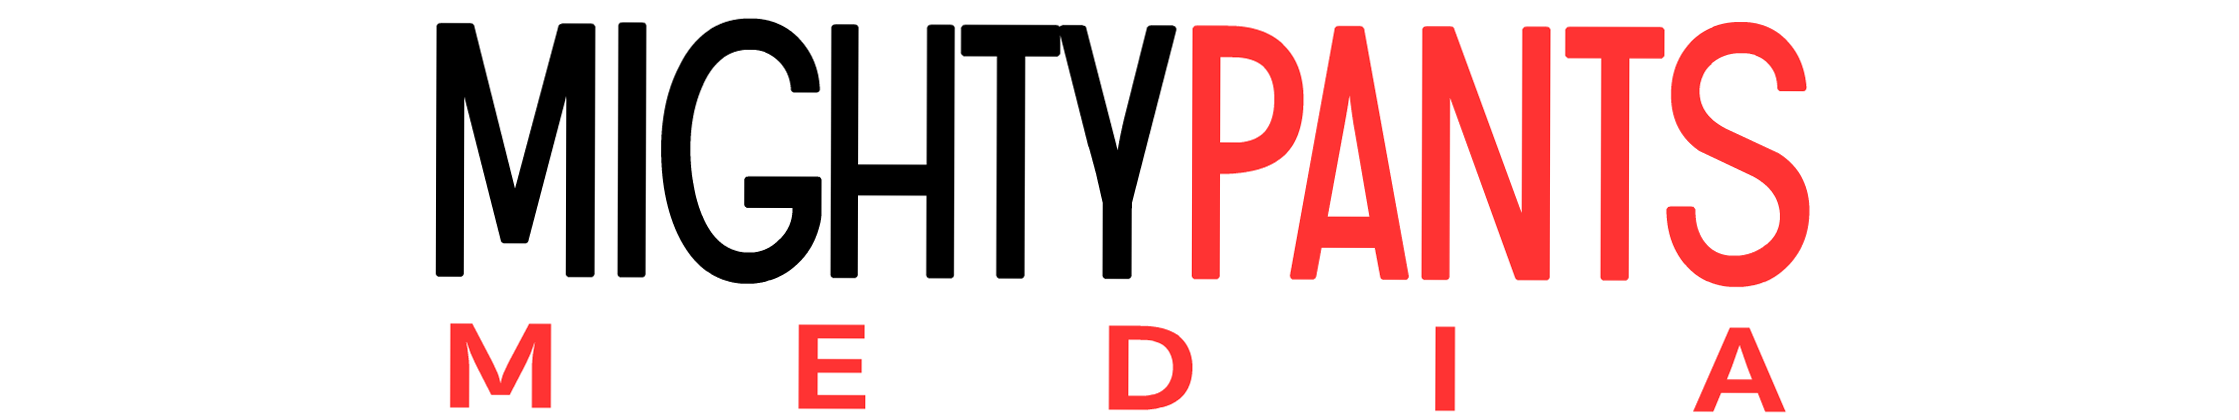 MightyPants Media